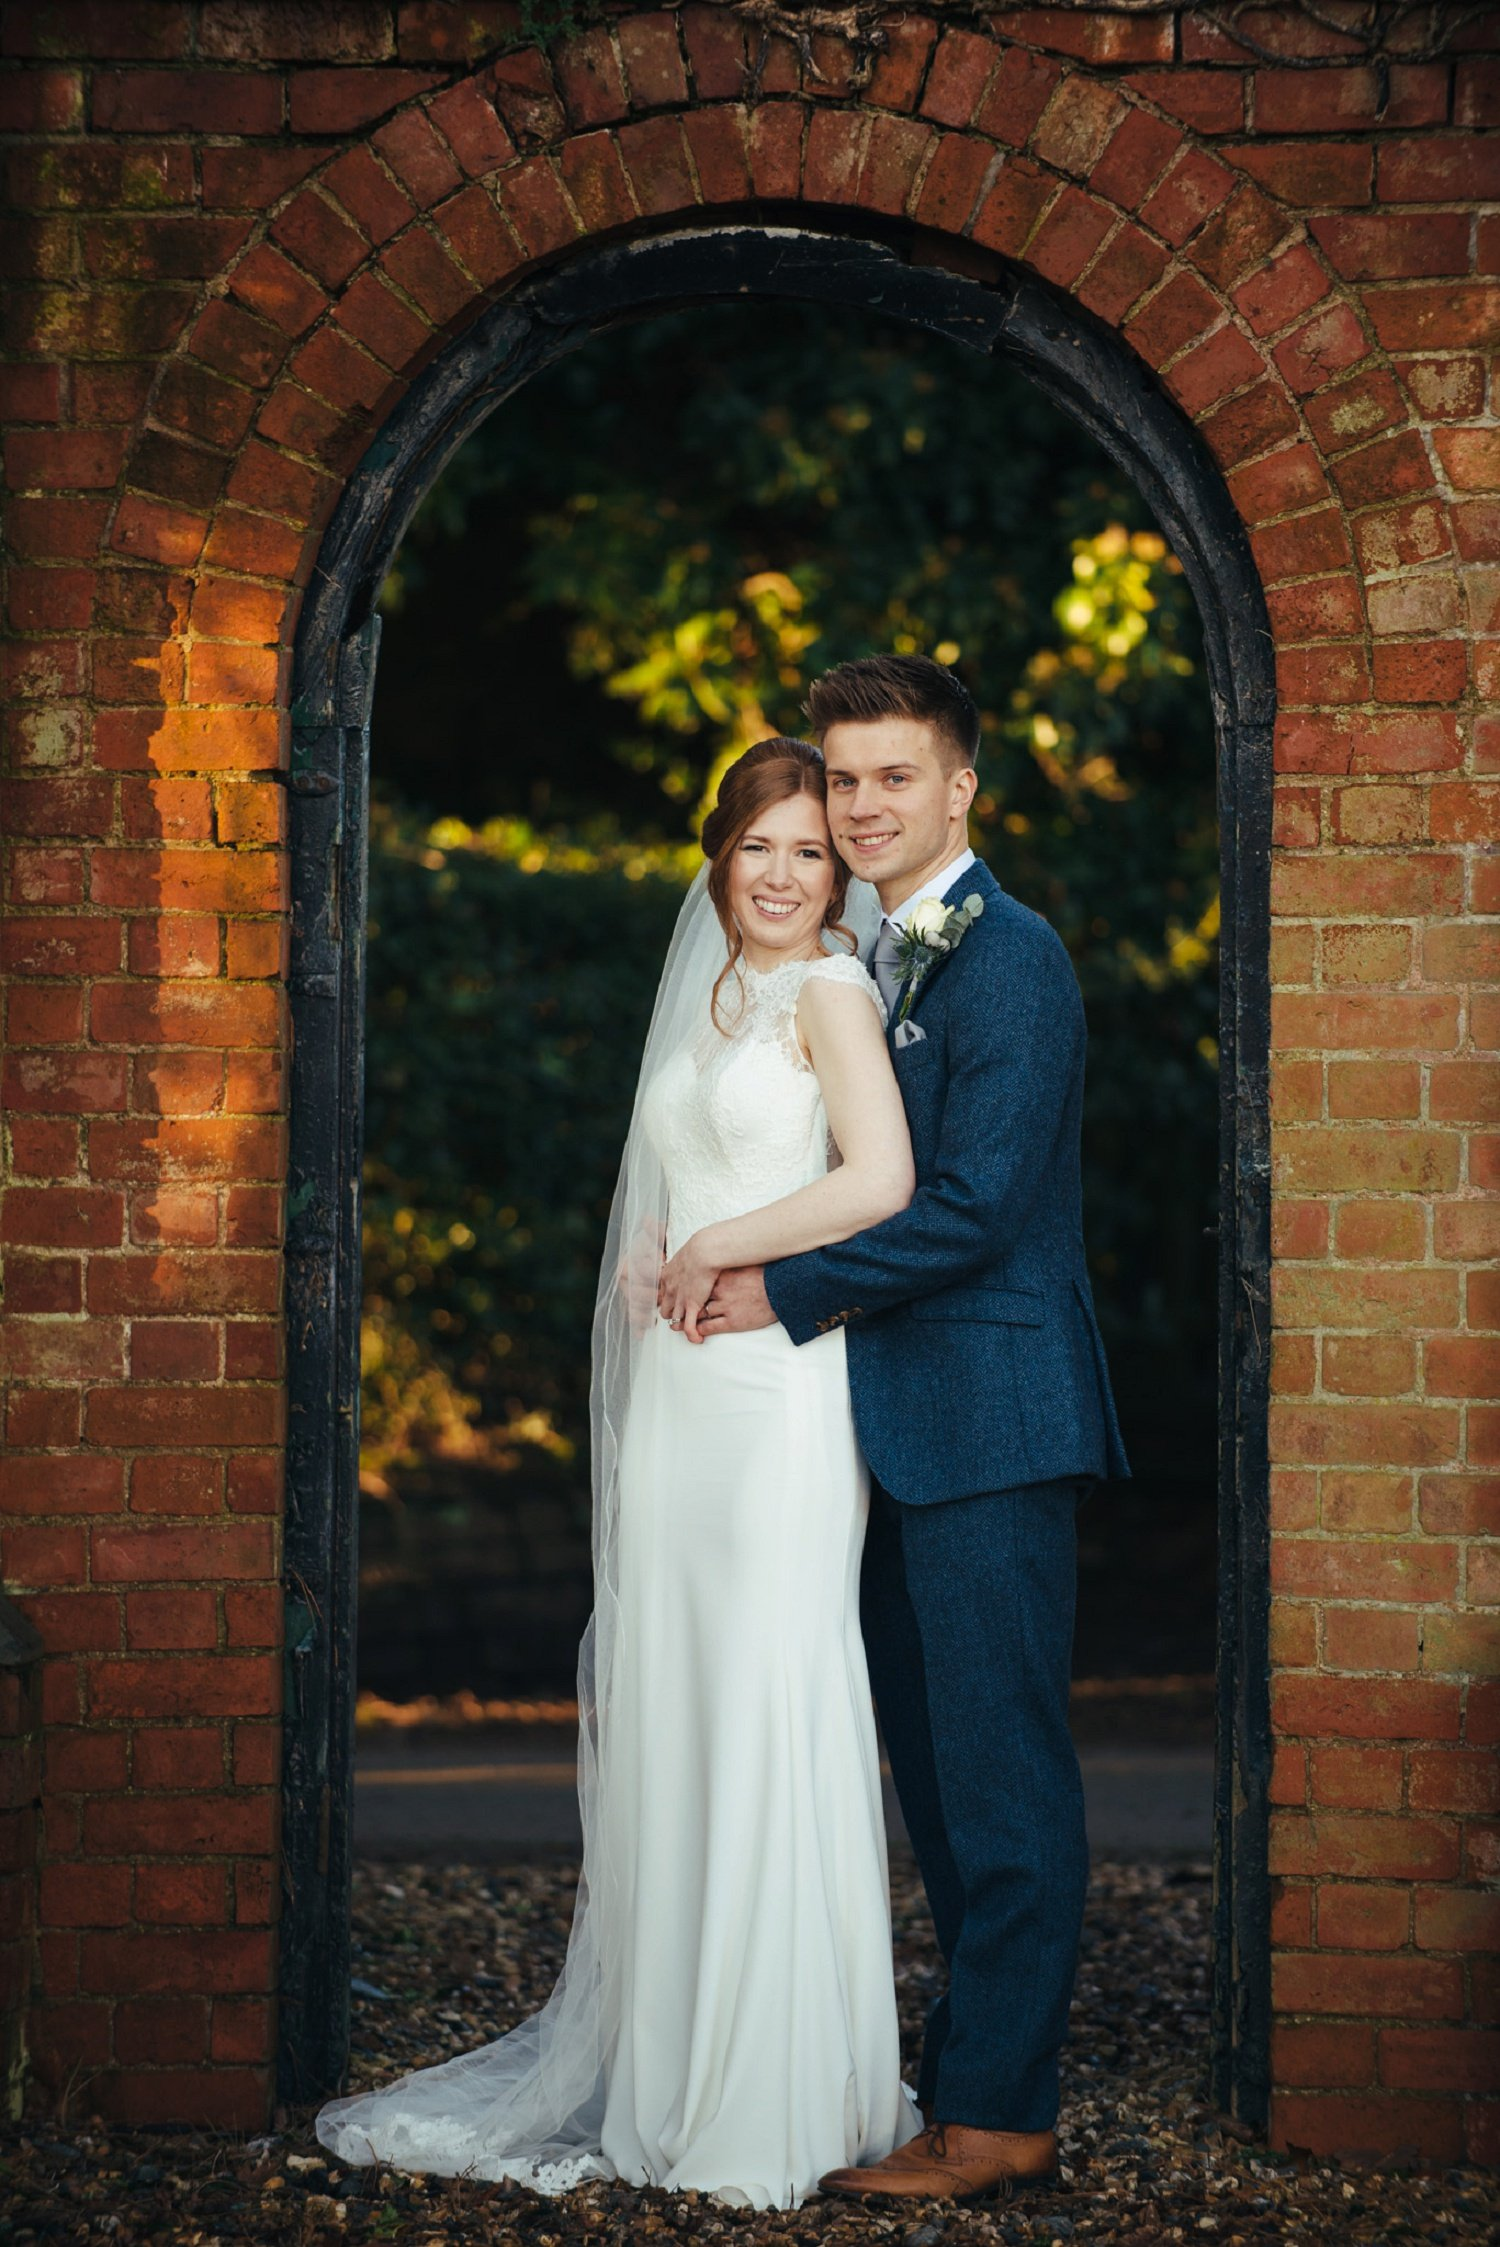 Full body portrait of a bride and her groom in the golden hour at Bredenbury Court Barns in Herefordshire